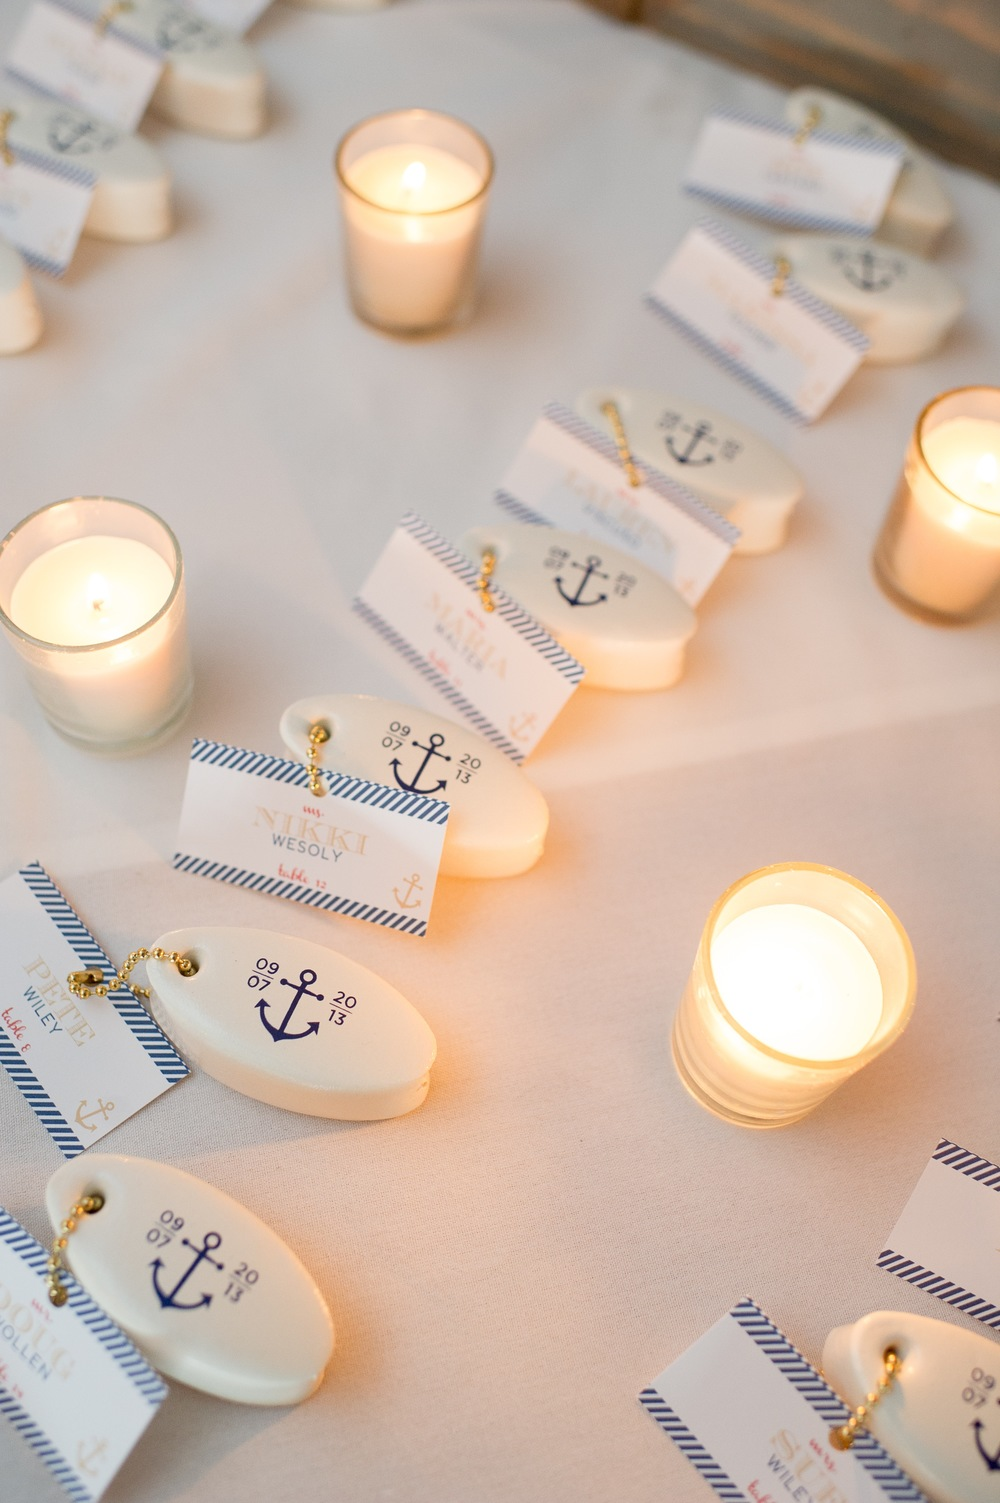 Jcrew Kate Spade Nautical Glam inspired Wedding58.jpg